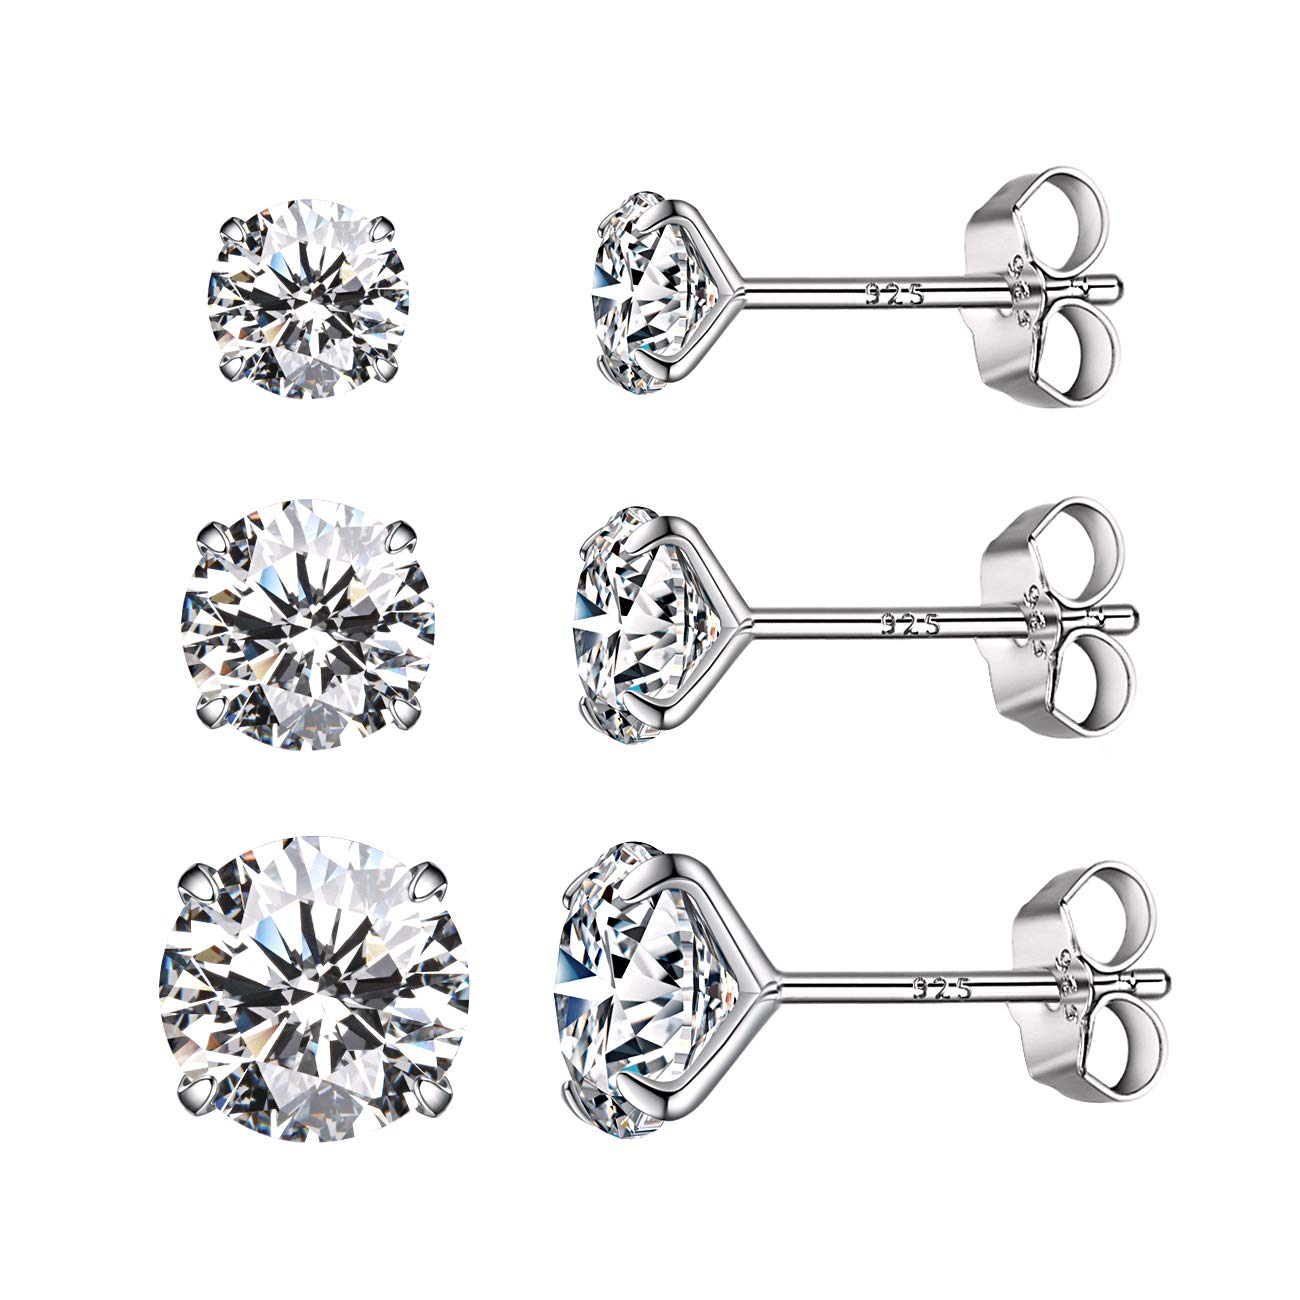 CZ Stud Earrings 925 Sterling Silver 18K Gold Plated Round Cubic Zirconia Hypoallergenic Set (S4-6) by AllenCOCO